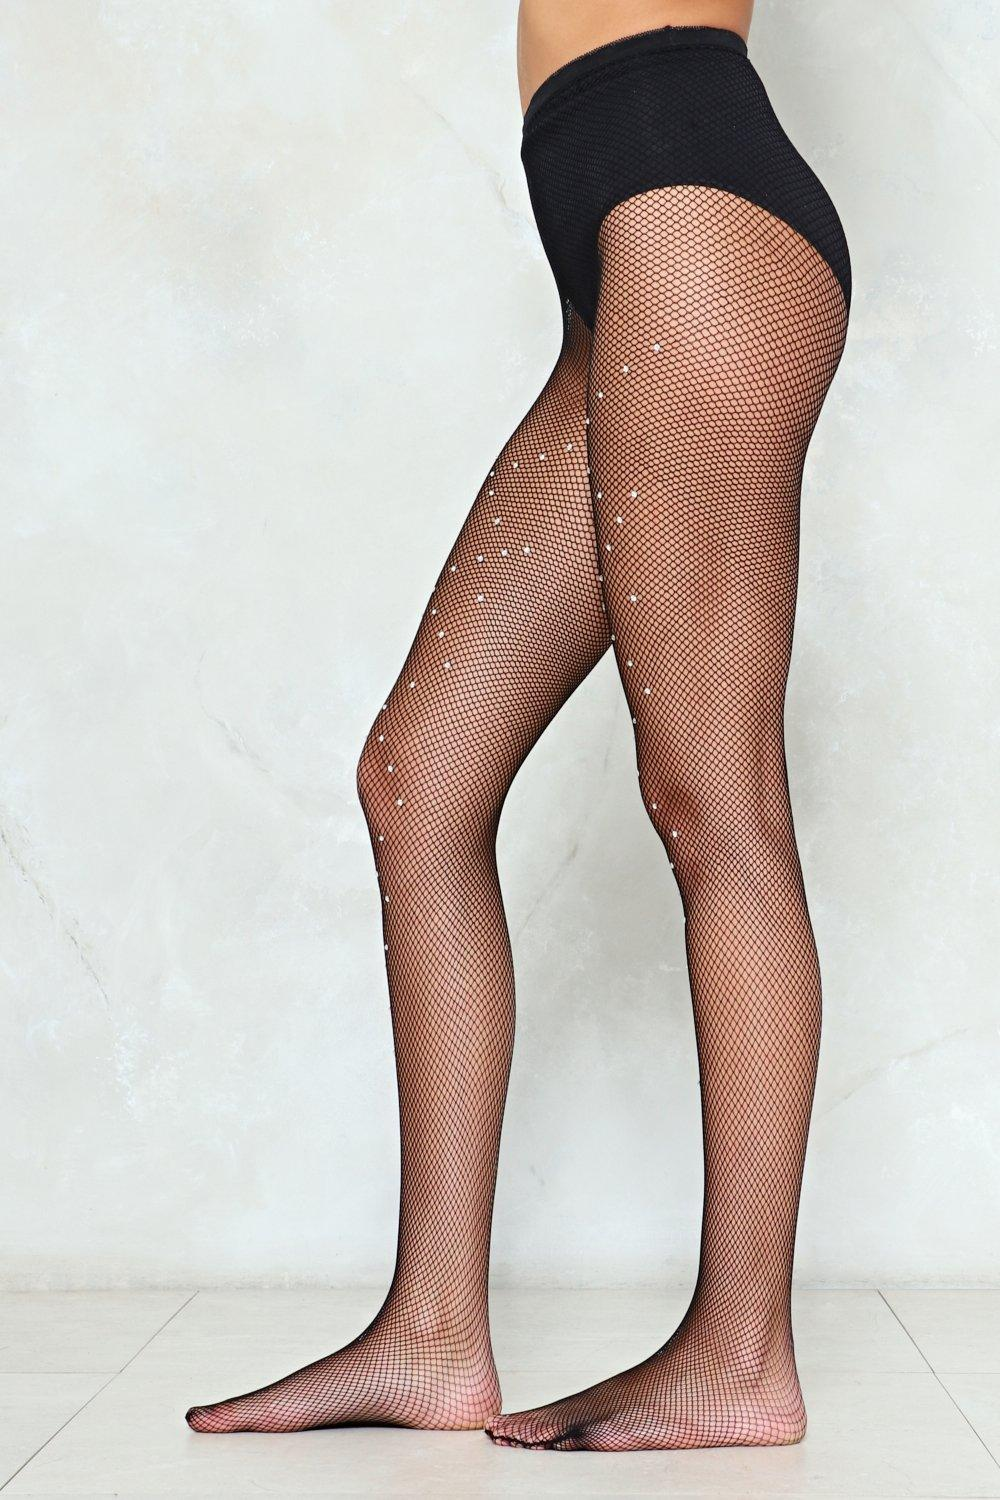 b0f374c6ceb188 Diamante in the Rough Fishnet Tights | Shop Clothes at Nasty Gal!